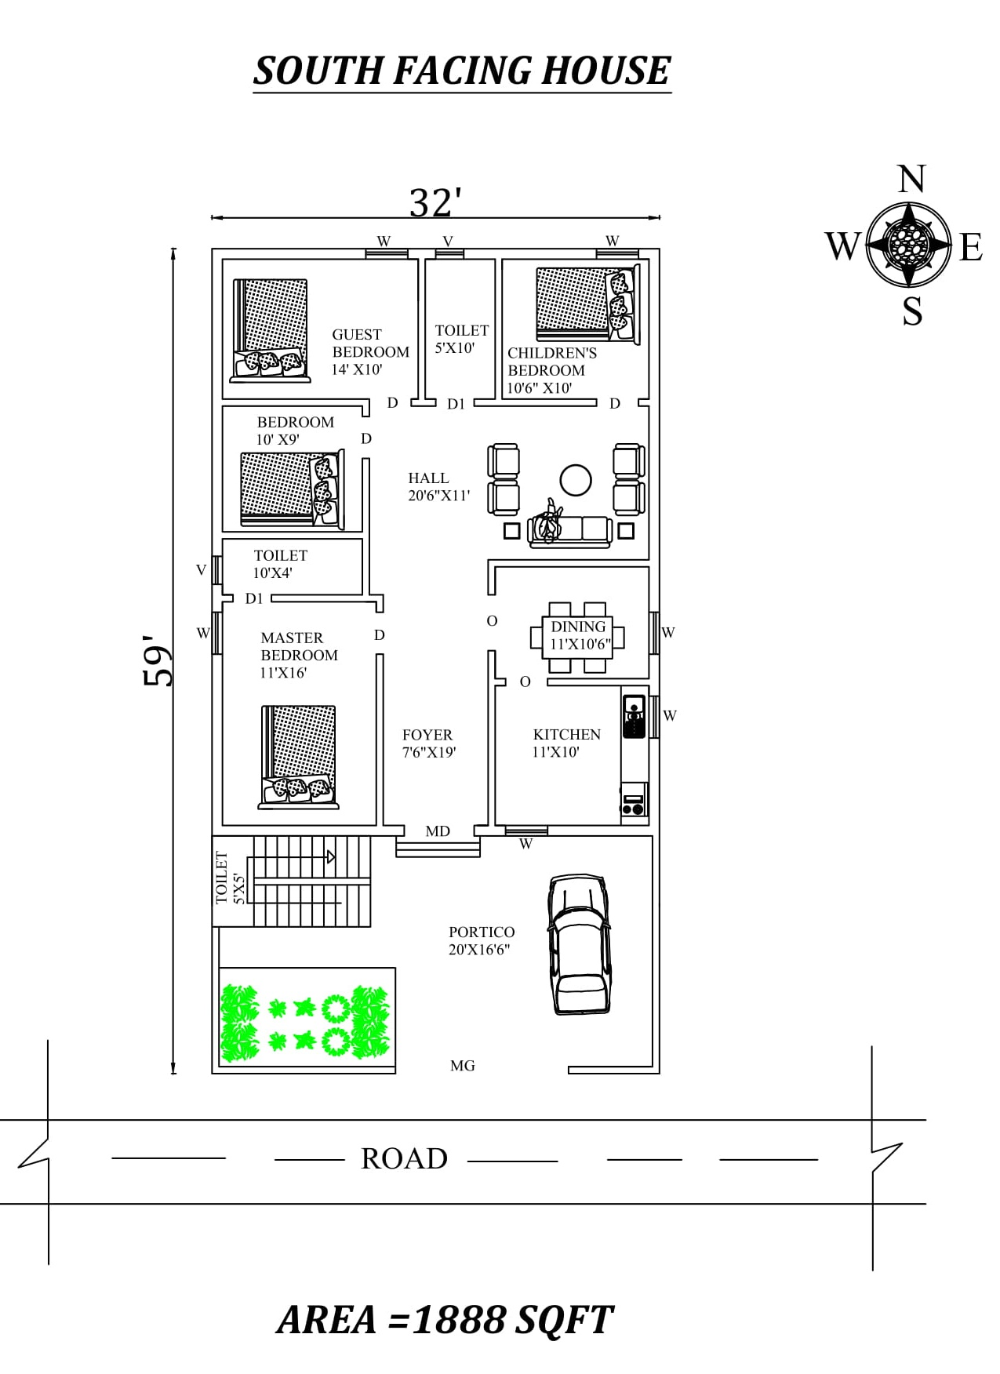 32 X59 4bhk South Facing House Plan As Per Vastu Shastra Autocad Dwg And Pdf File Details South Facing House Architectural House Plans House Plans